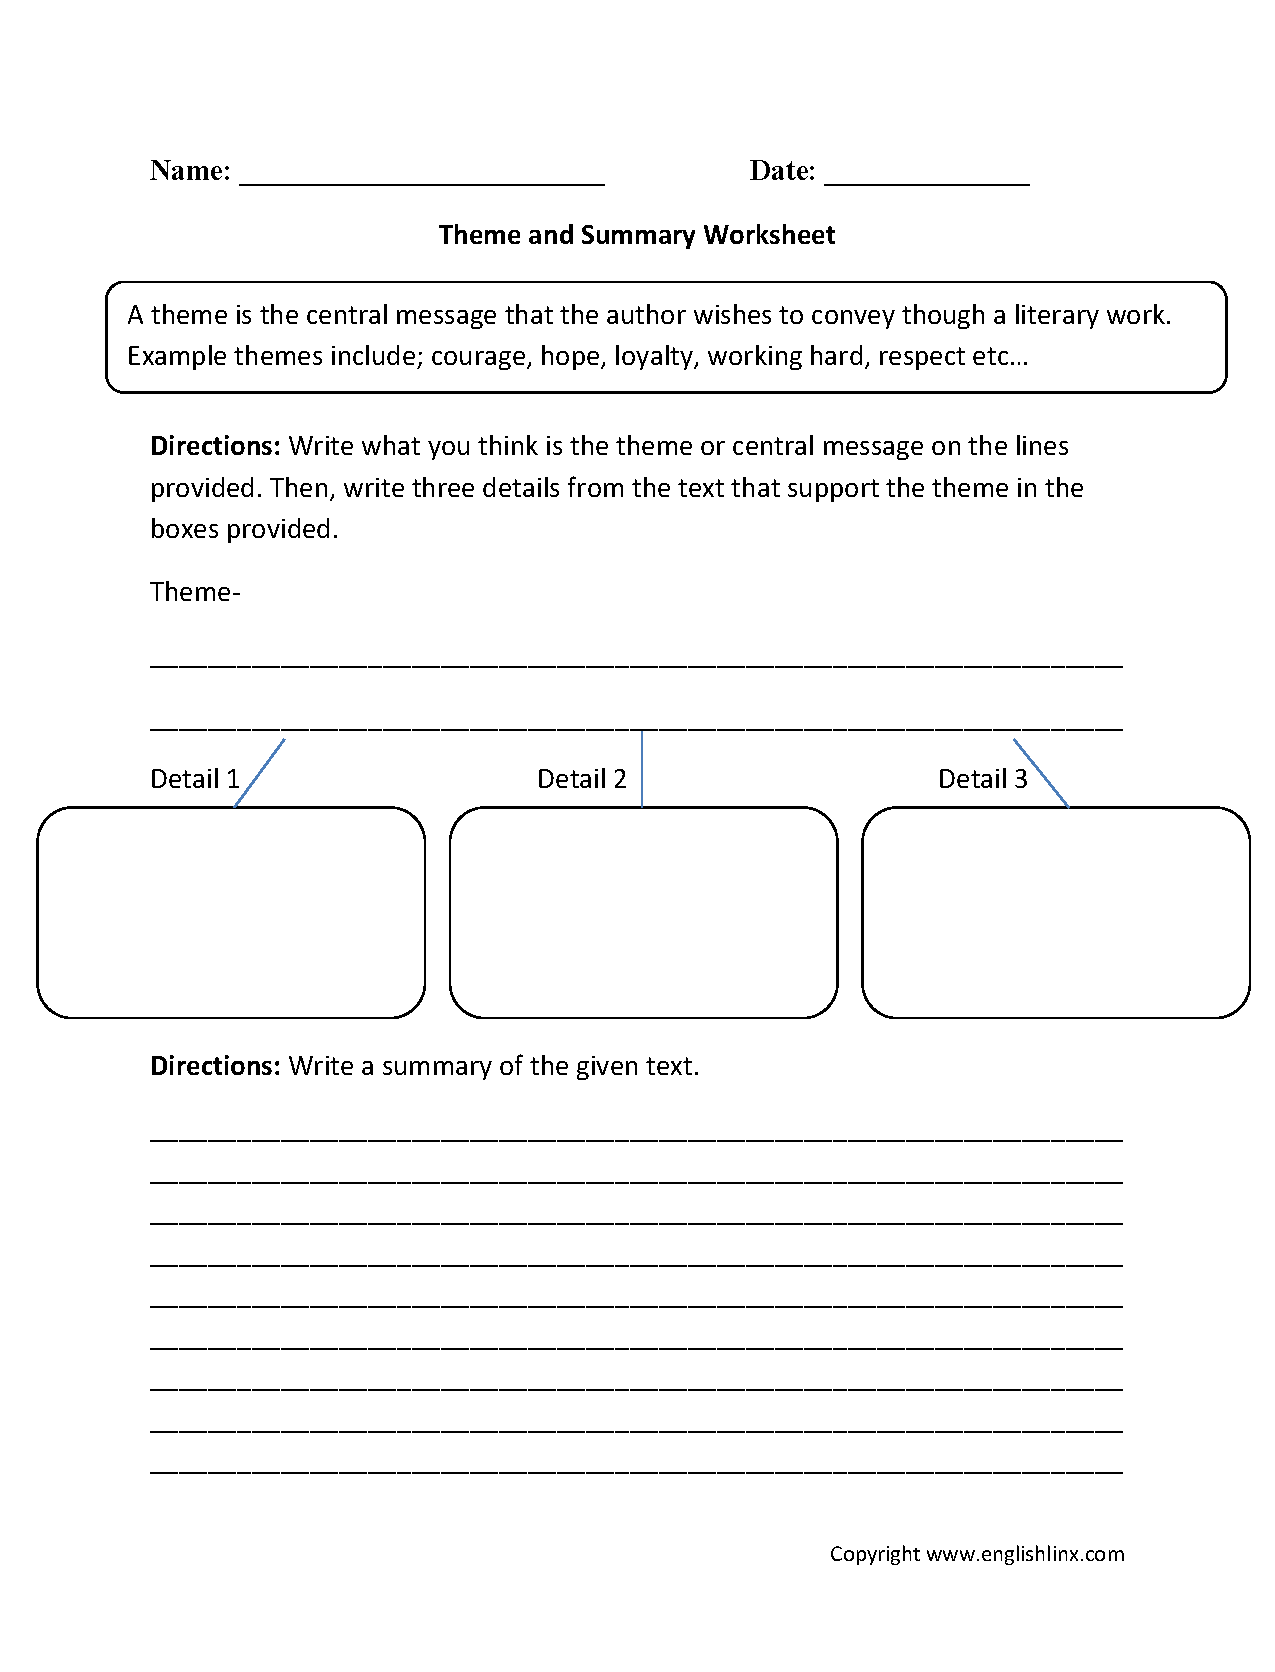 small resolution of Theme Worksheets   School worksheets